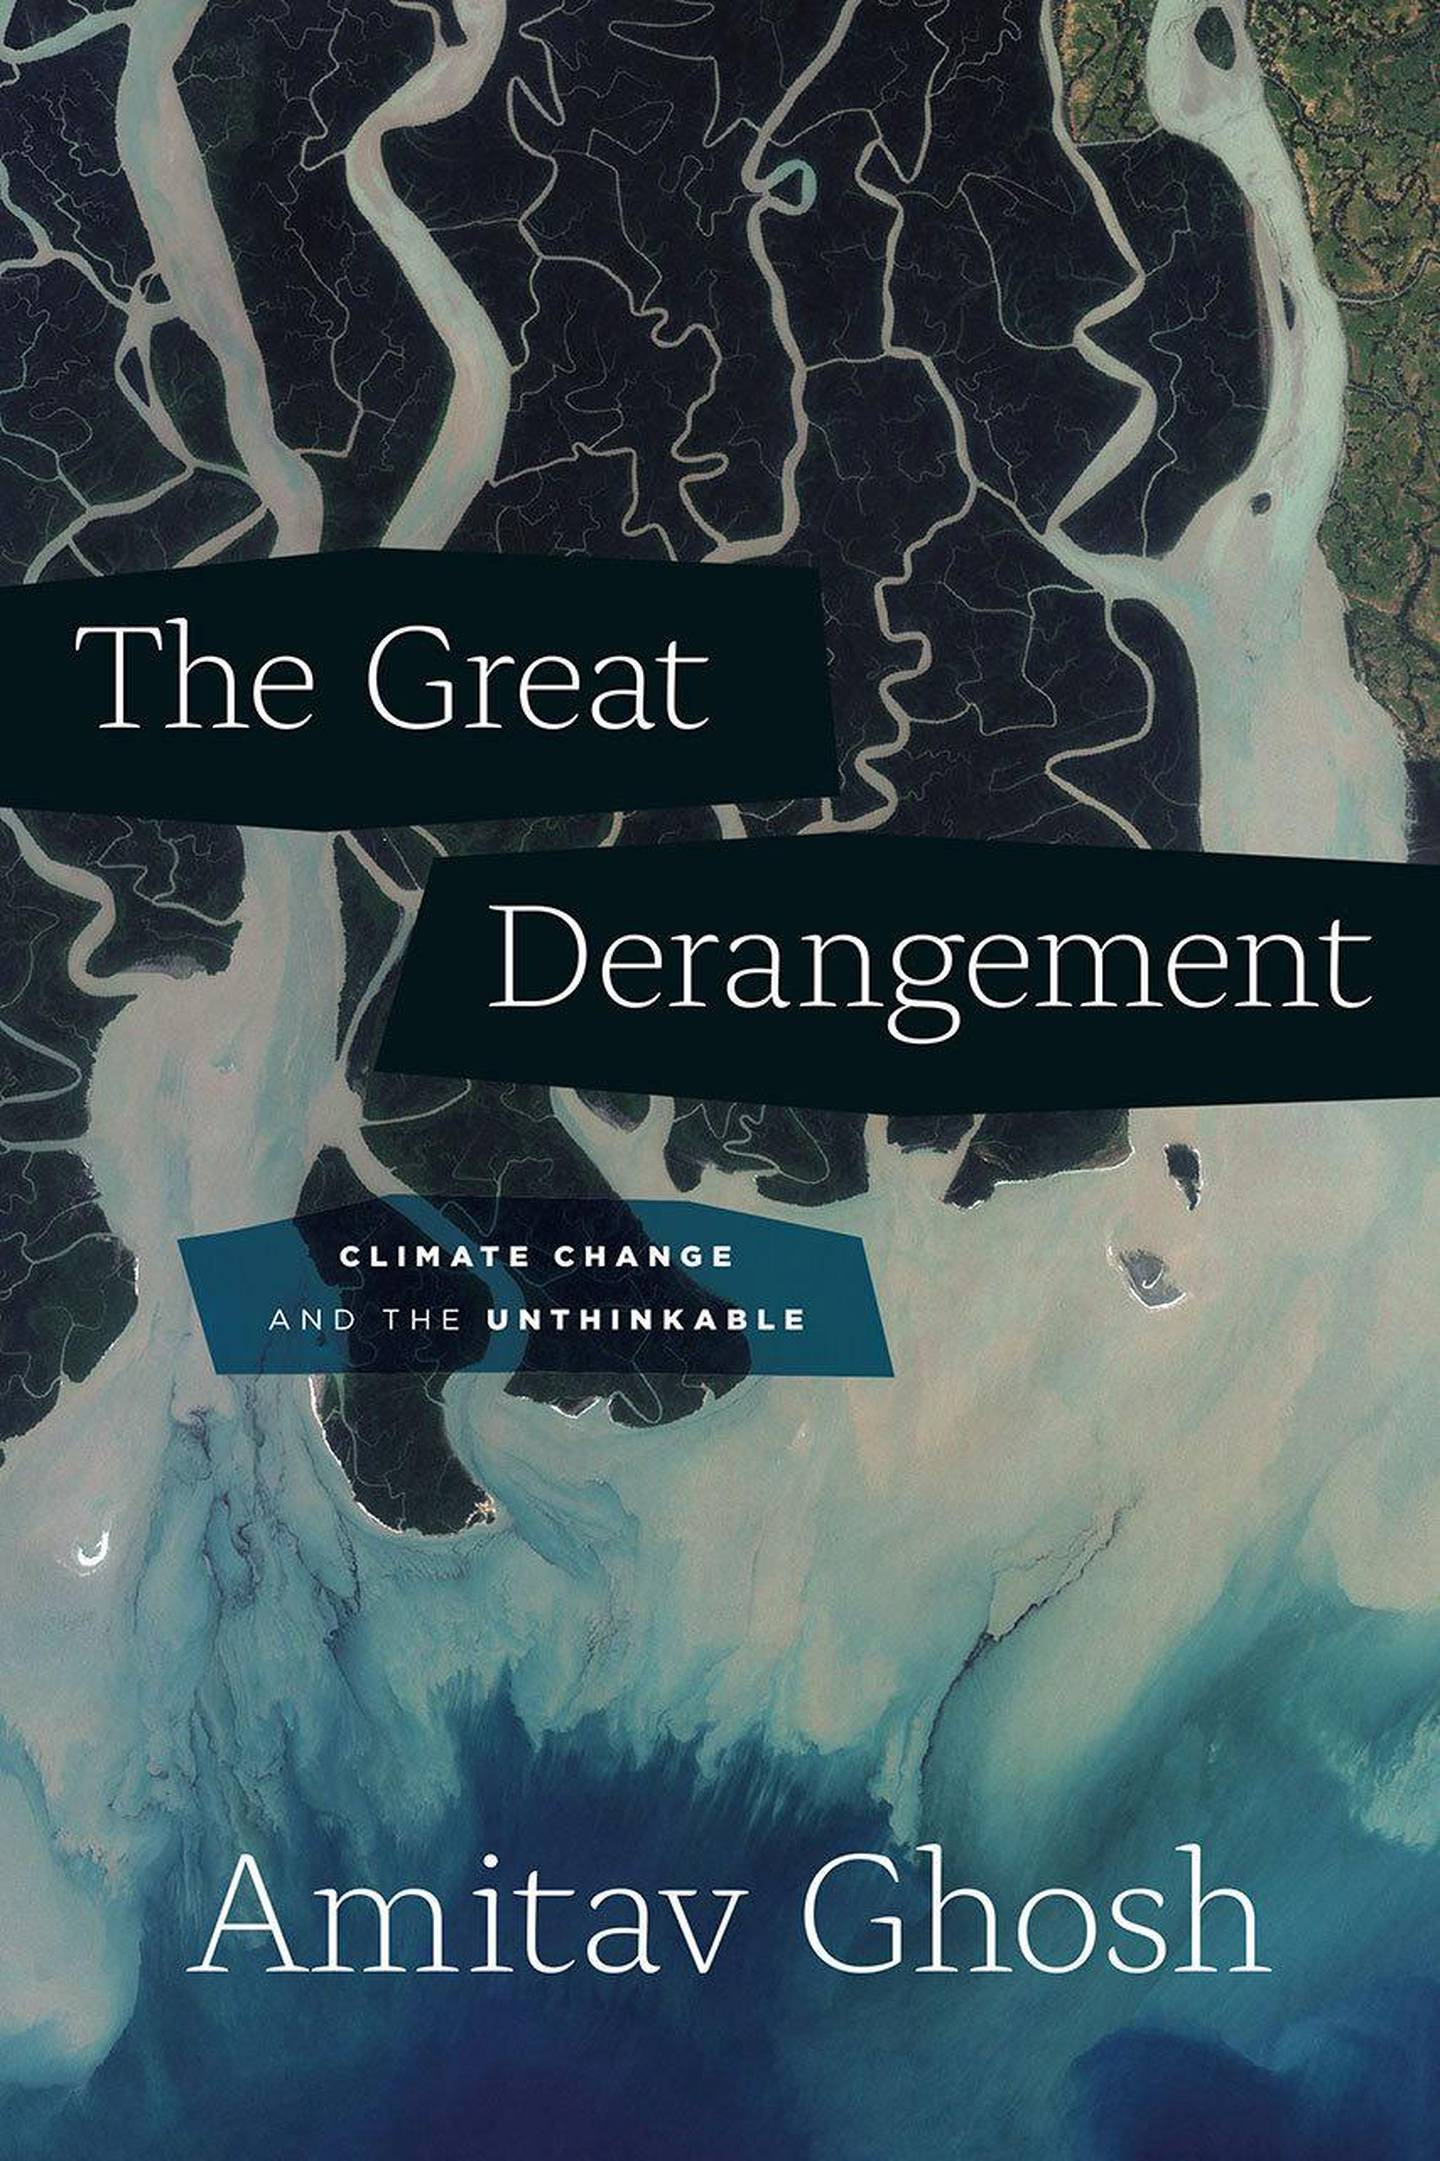 The Great Derangement: Climate Change and the Unthinkable by Amitav Ghosh. Courtesy University of Chicago Press